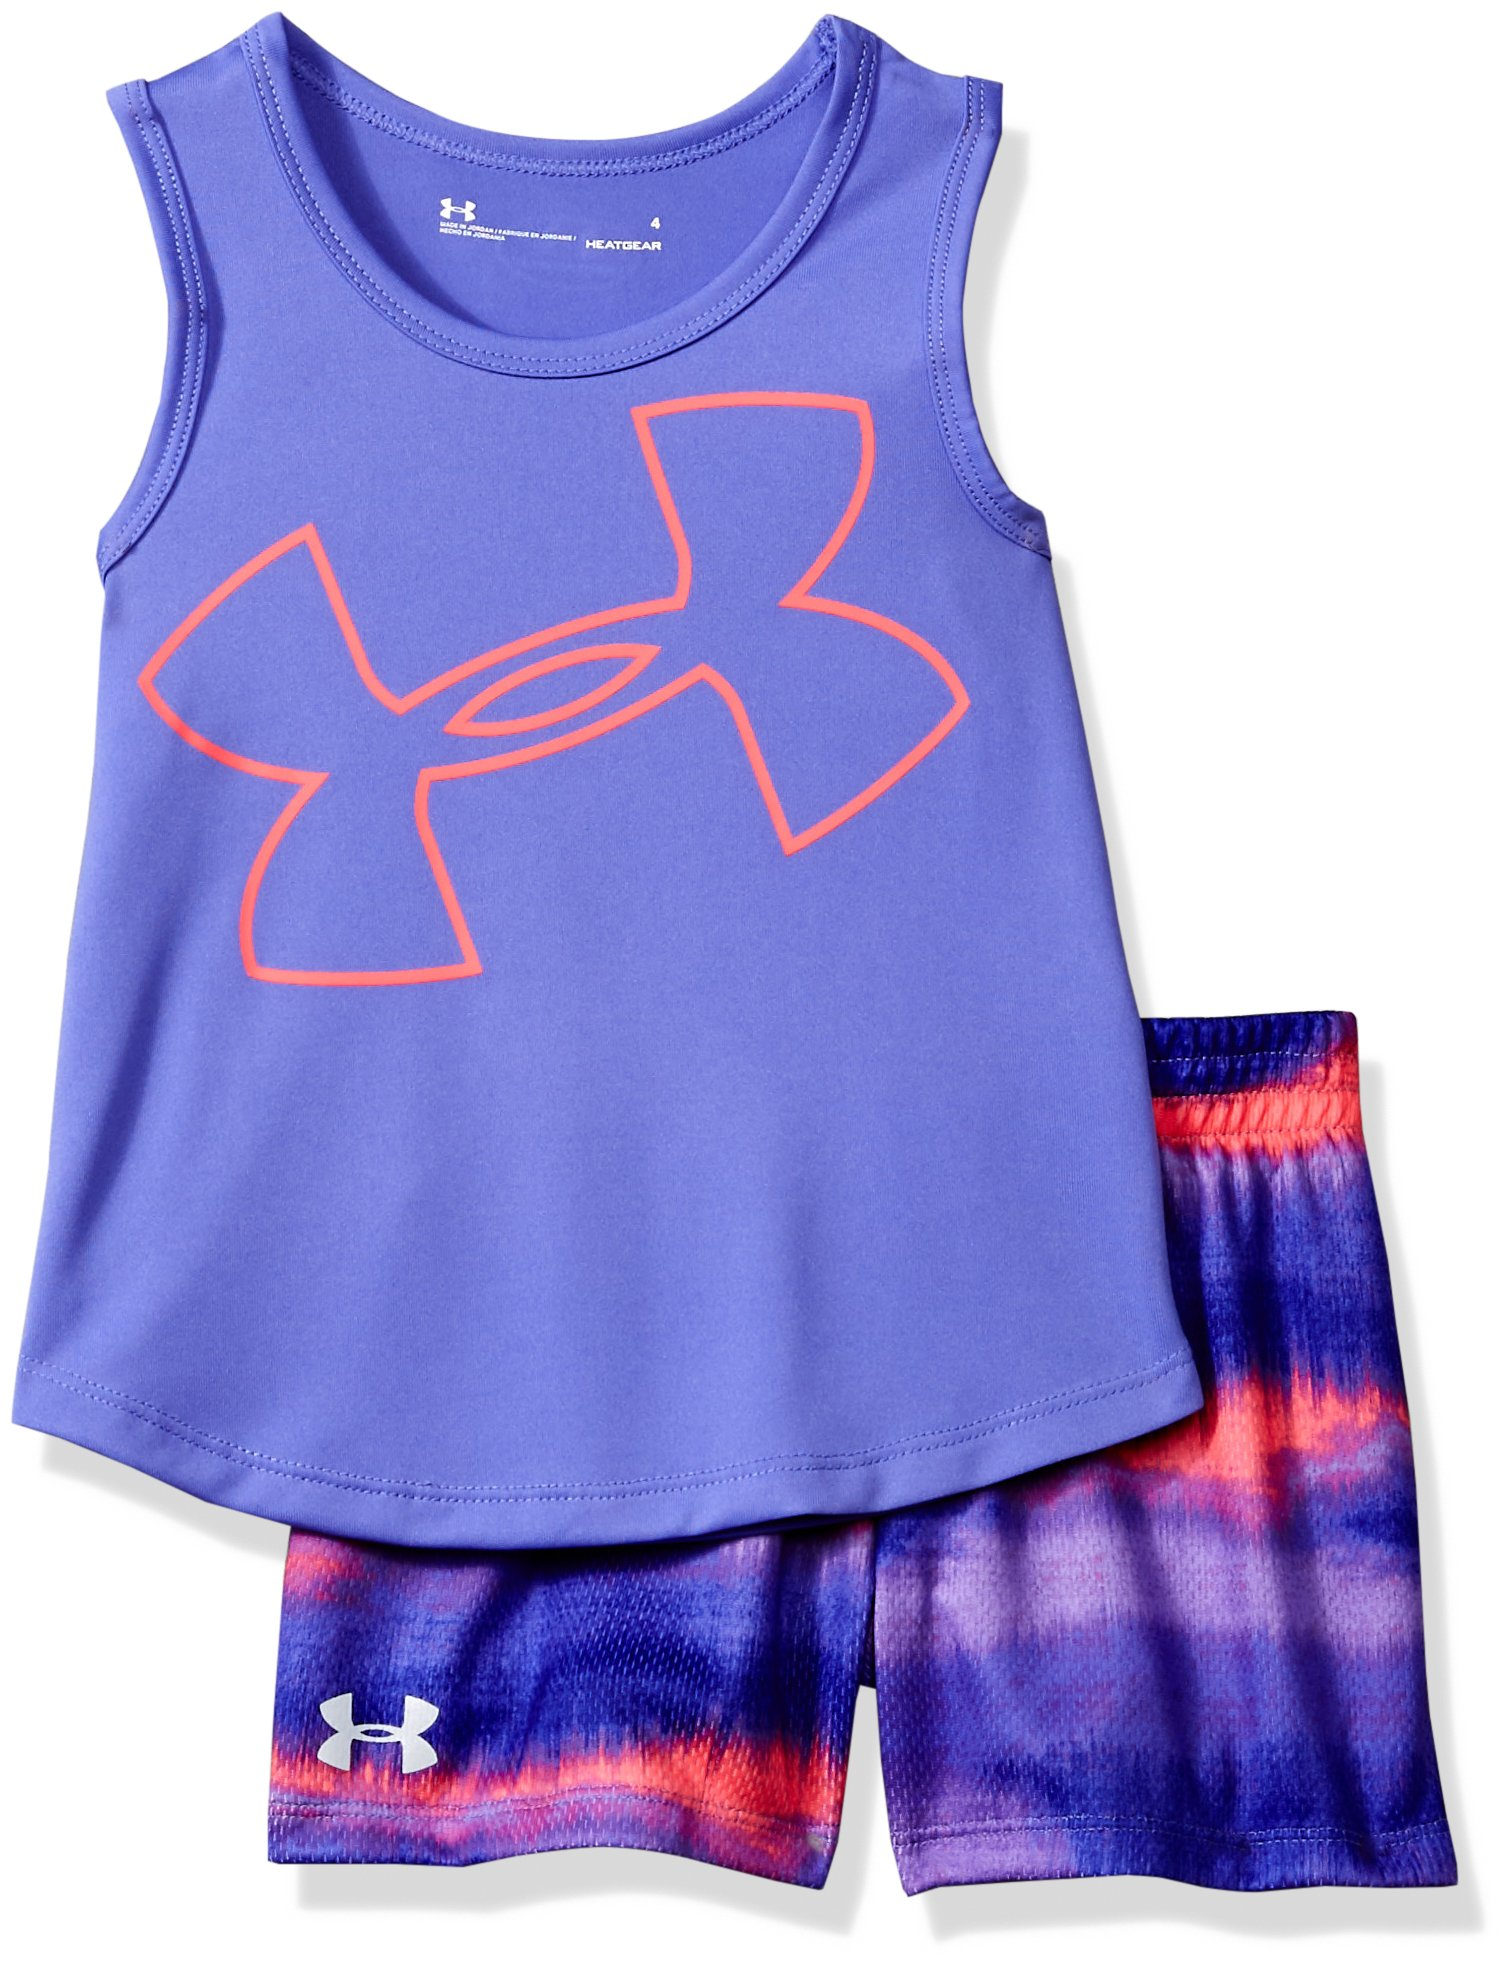 Under Armour Toddler Girls' UA Tank and Short Set, Violet Storm, 2T